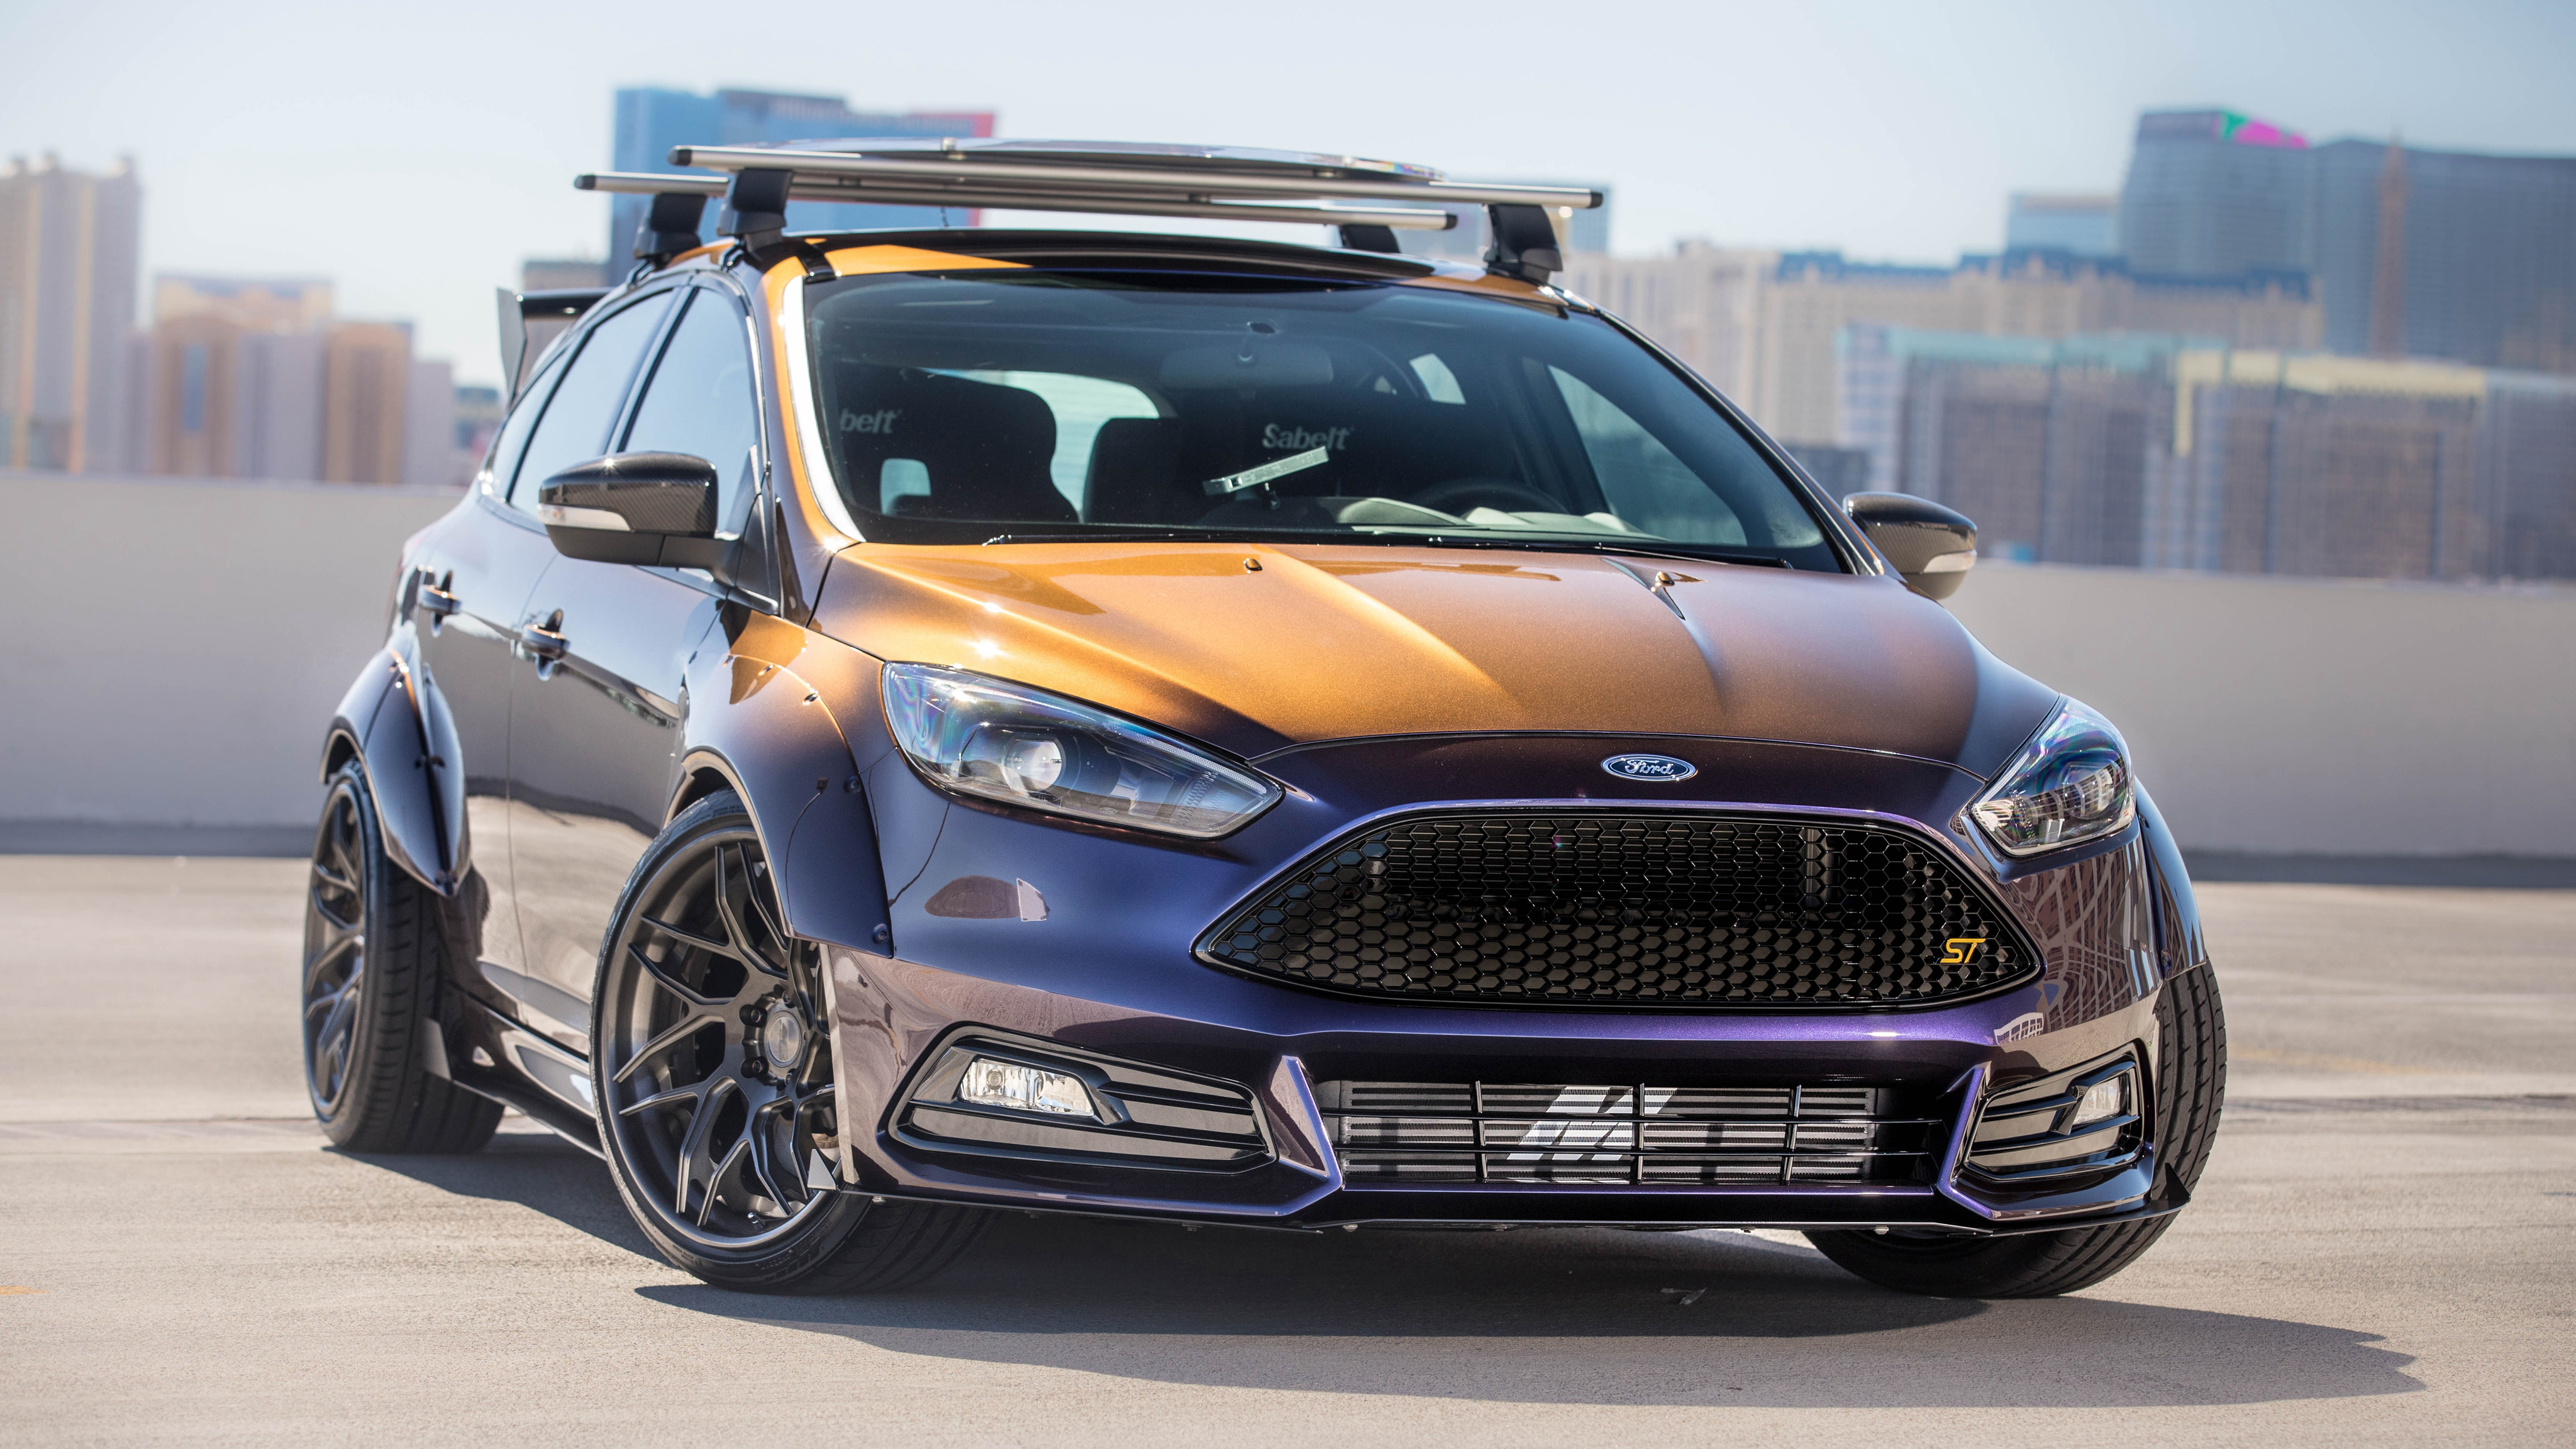 Ford Focus St By Blood Type Racing K